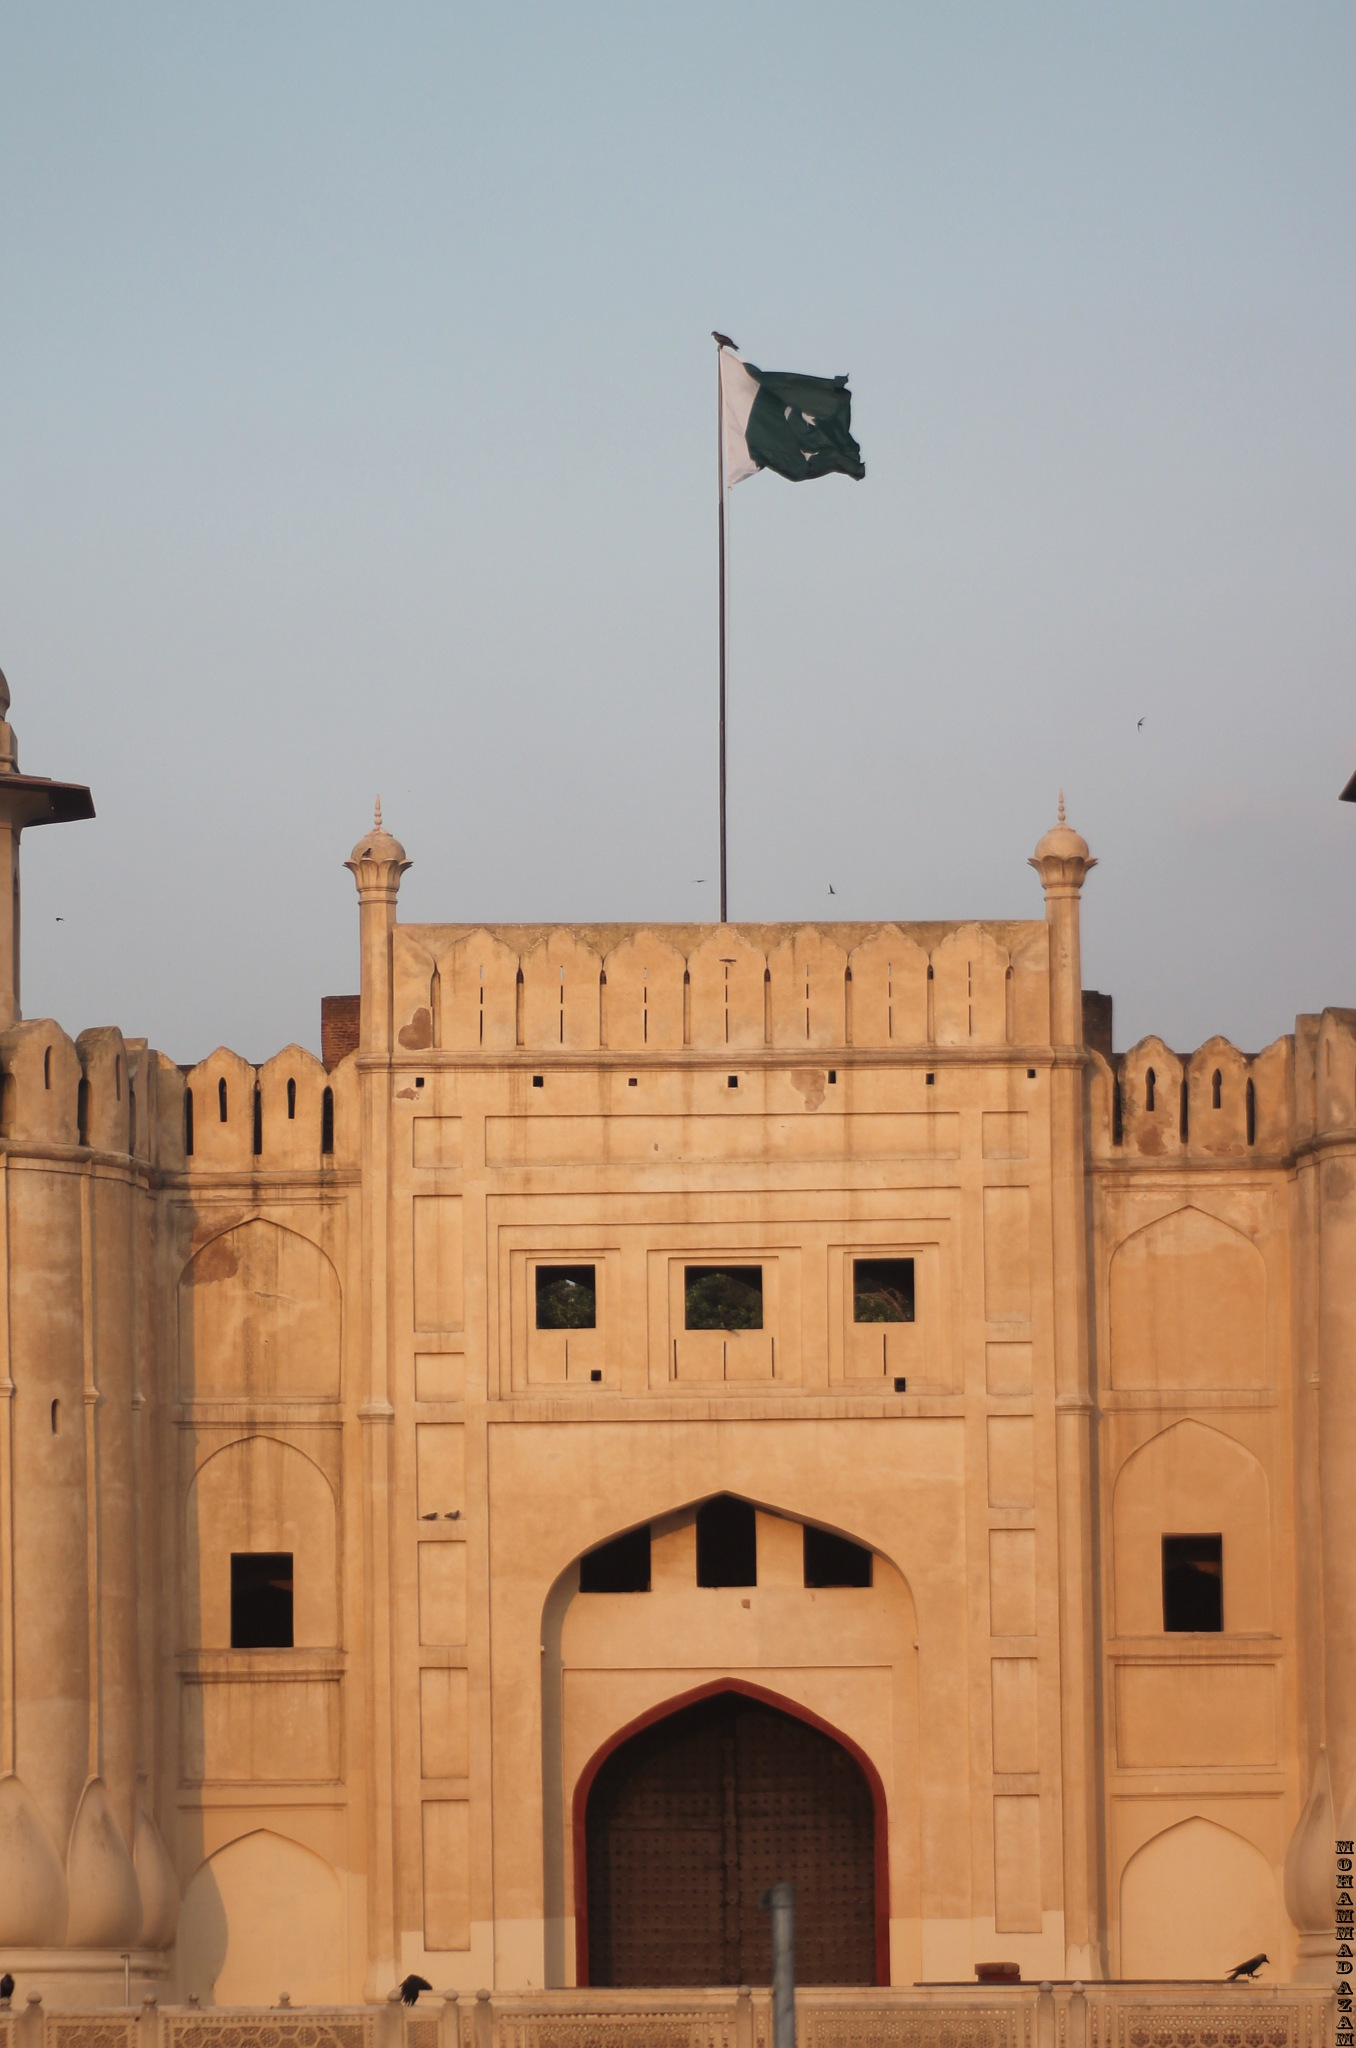 LAHORE FORT 107 by Mohammad Azam